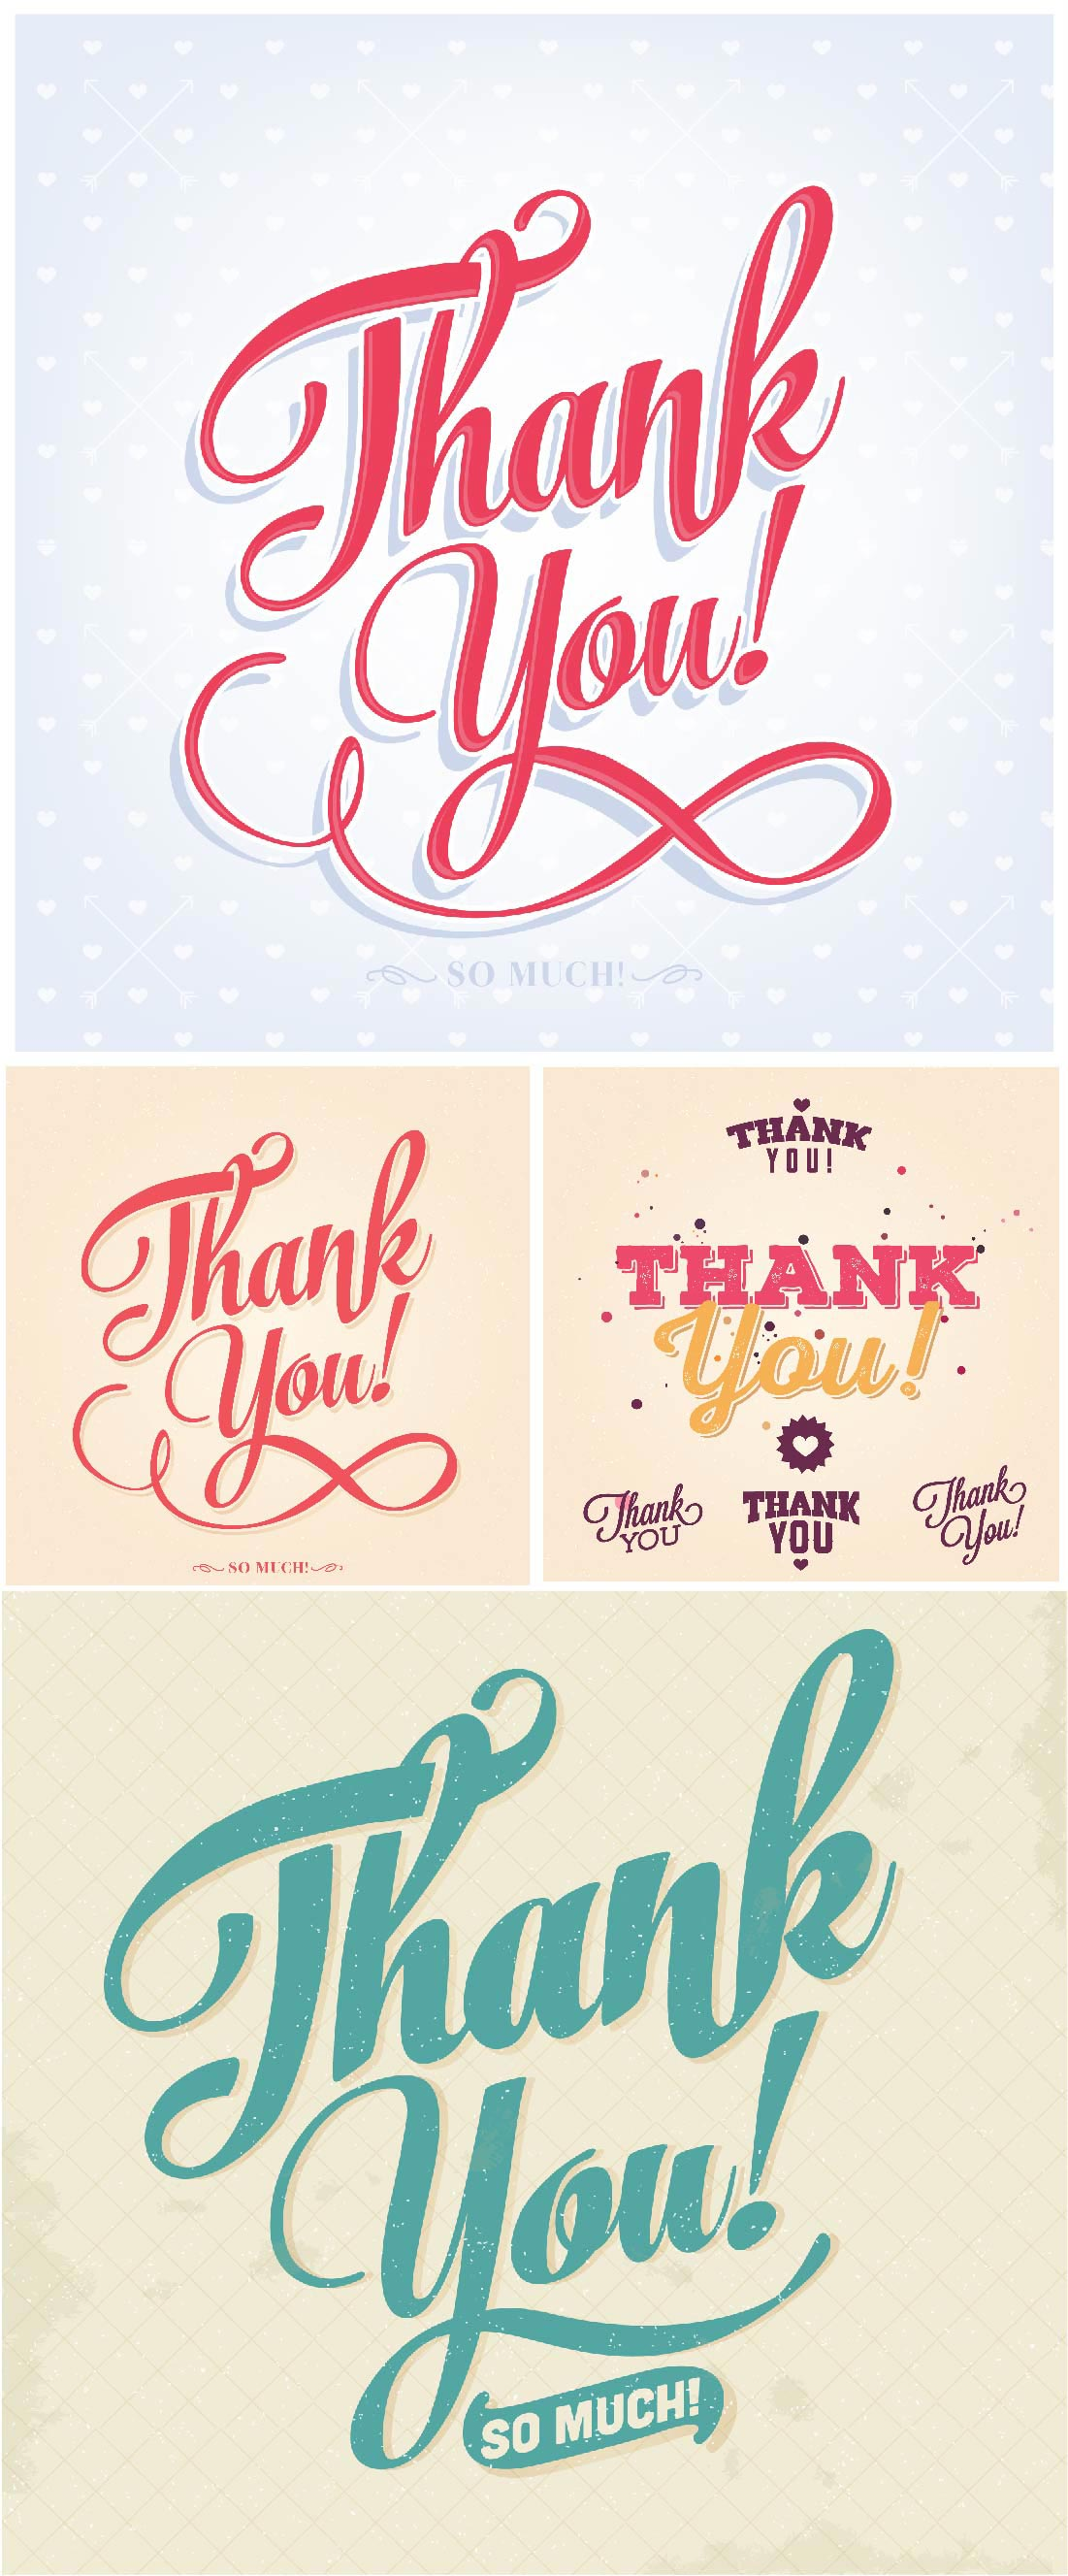 2thank-you